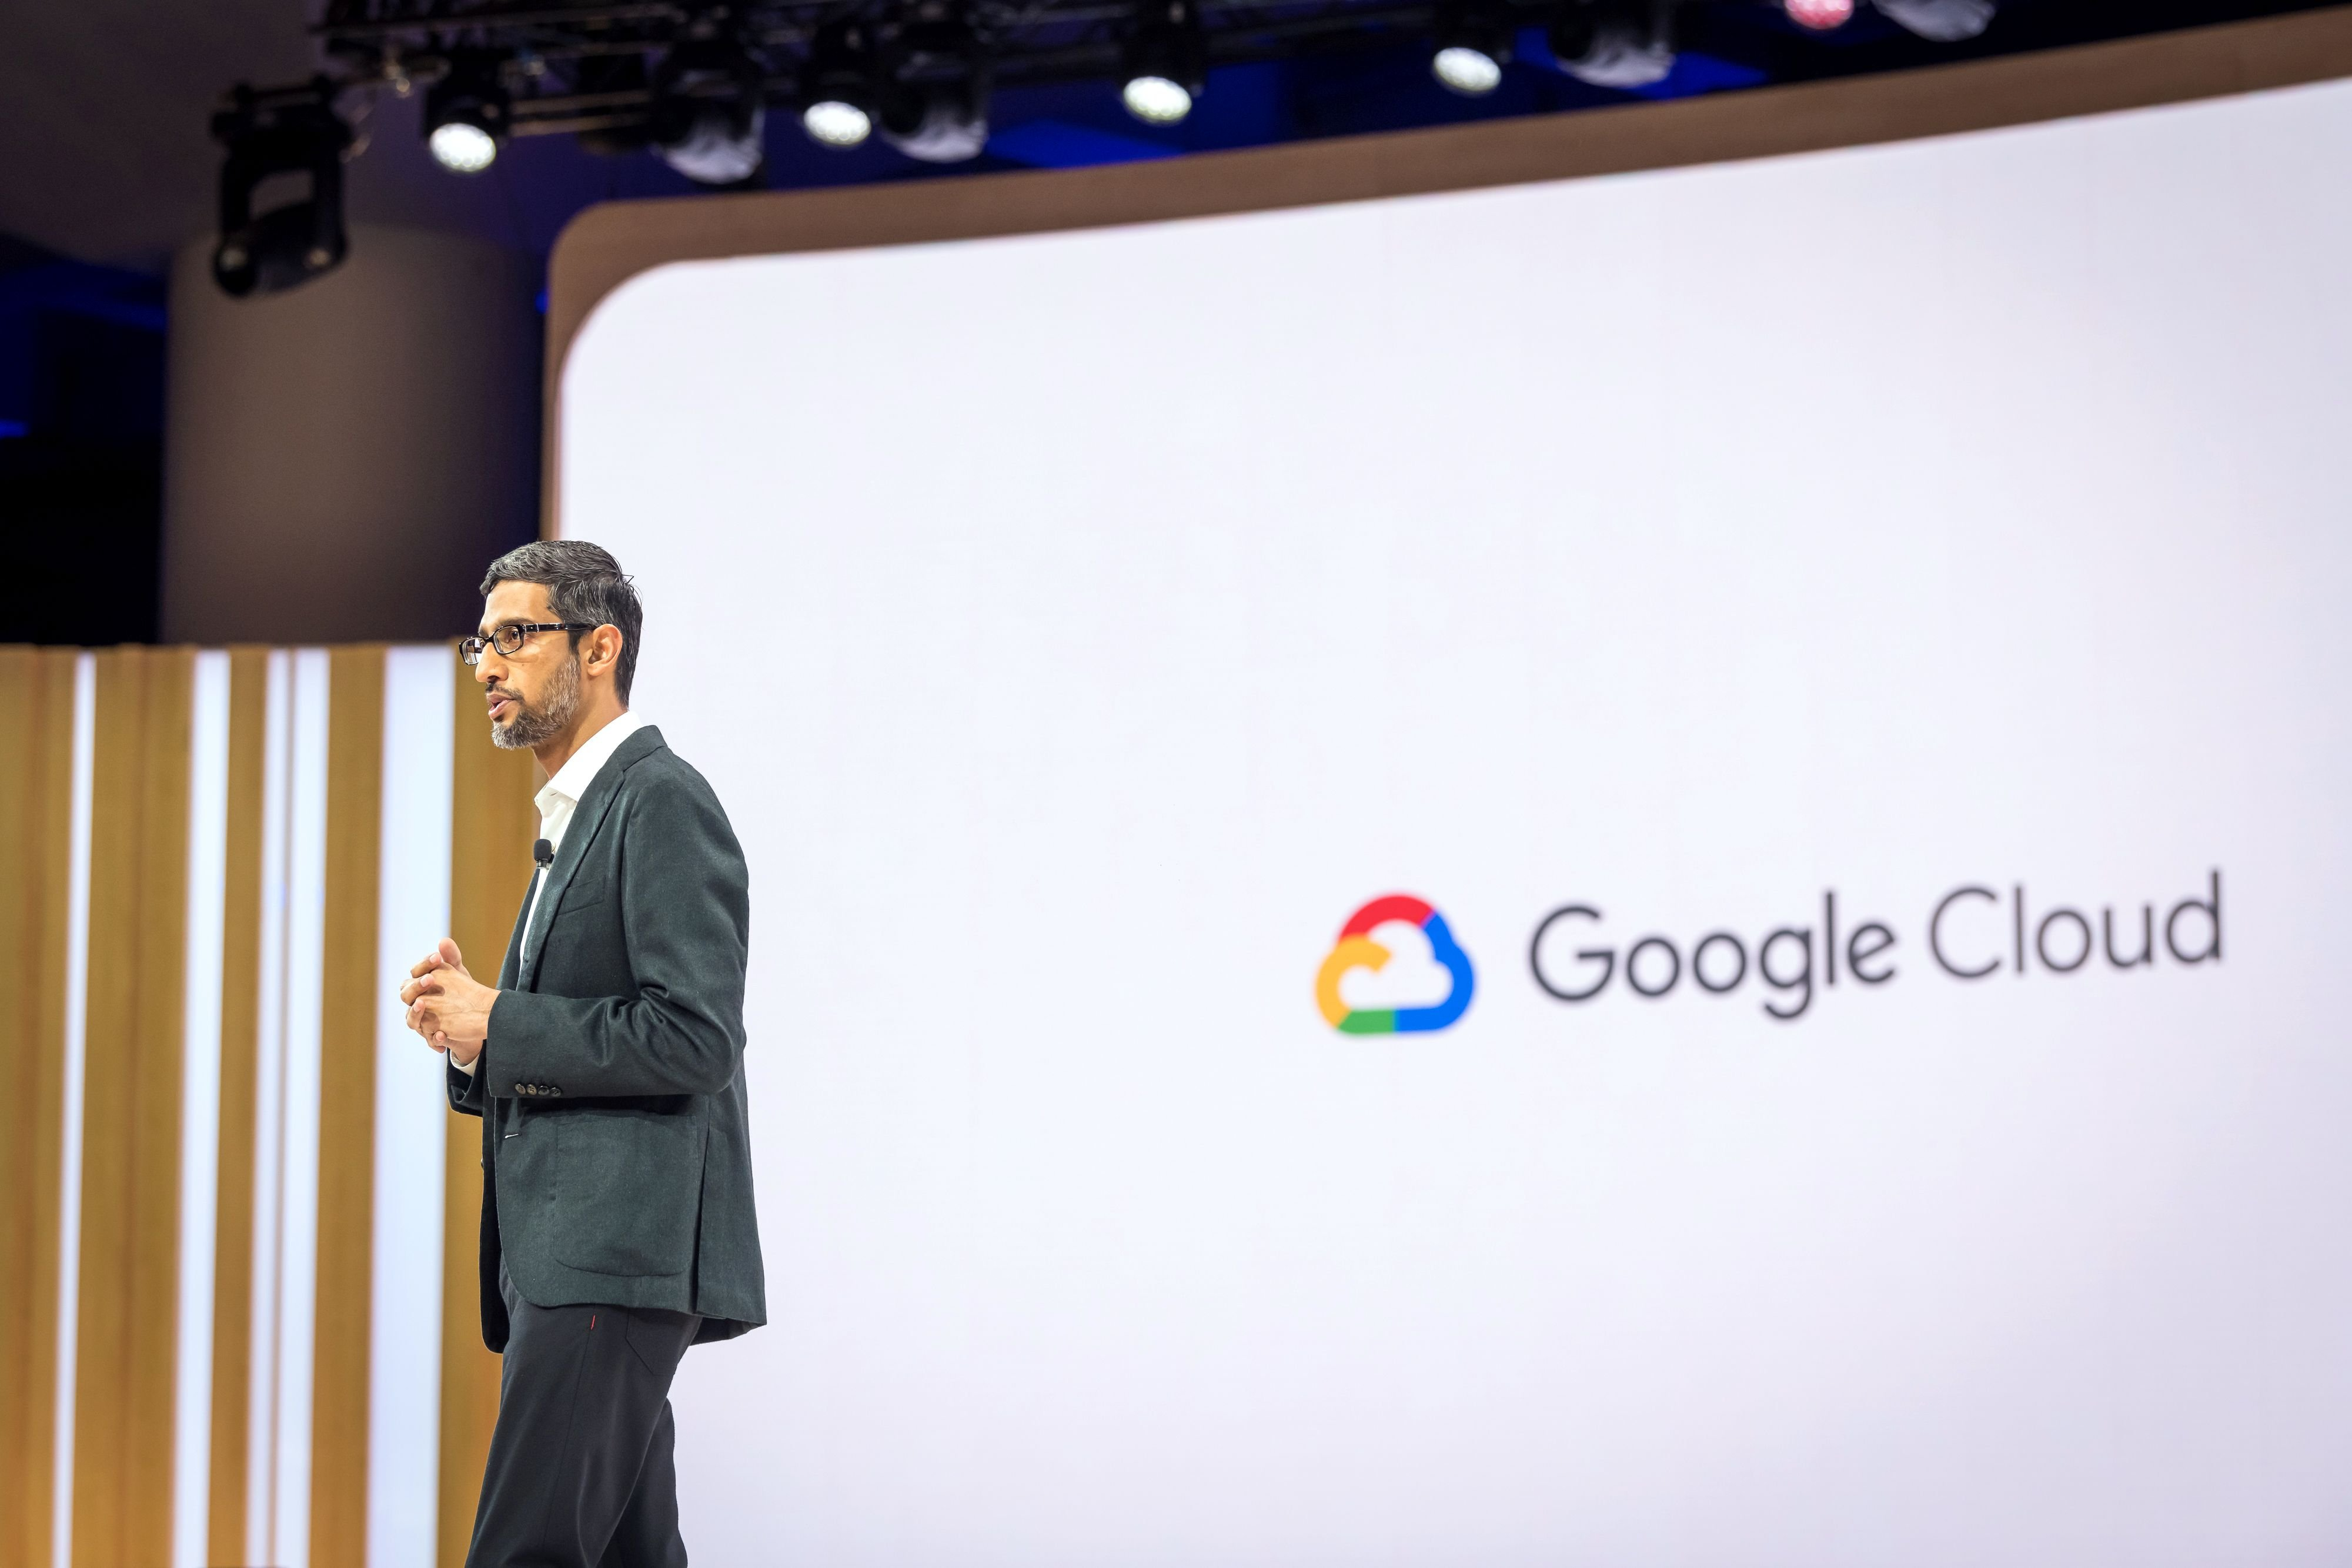 Google Cloud announces new regions in Seoul, South Korea and